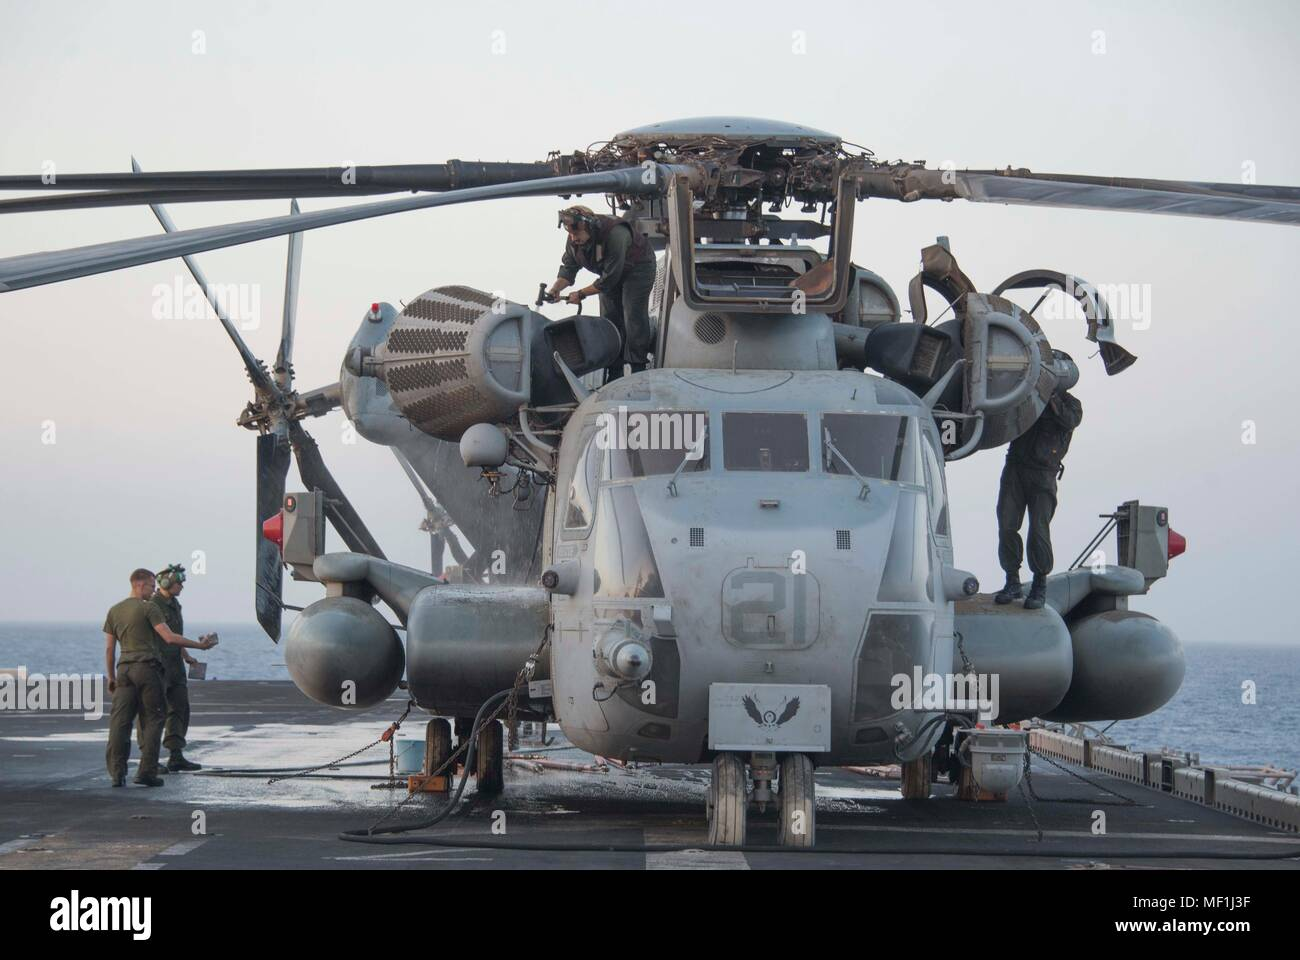 U.S. 5TH FLEET AREA OF OPERATIONS (April 19, 2018) Marines wash down a CH-53E Super Stallion, attached to Marine Medium Tiltrotor Squadron (VMM) 162 (Reinforced), on the flight deck of  the Wasp-class amphibious assault ship USS Iwo Jima (LHD 7) April 19, 2018. Iwo Jima, homeported in Mayport, Fla., is on a regularly scheduled deployment to the U.S. 5th Fleet area of operations in support of maritime security operations to reassure allies and partners, and preserve the freedom of navigation and the free flow of commerce in the region. (U.S. Navy photo by Mass Communication Specialist Seaman Da Stock Photo